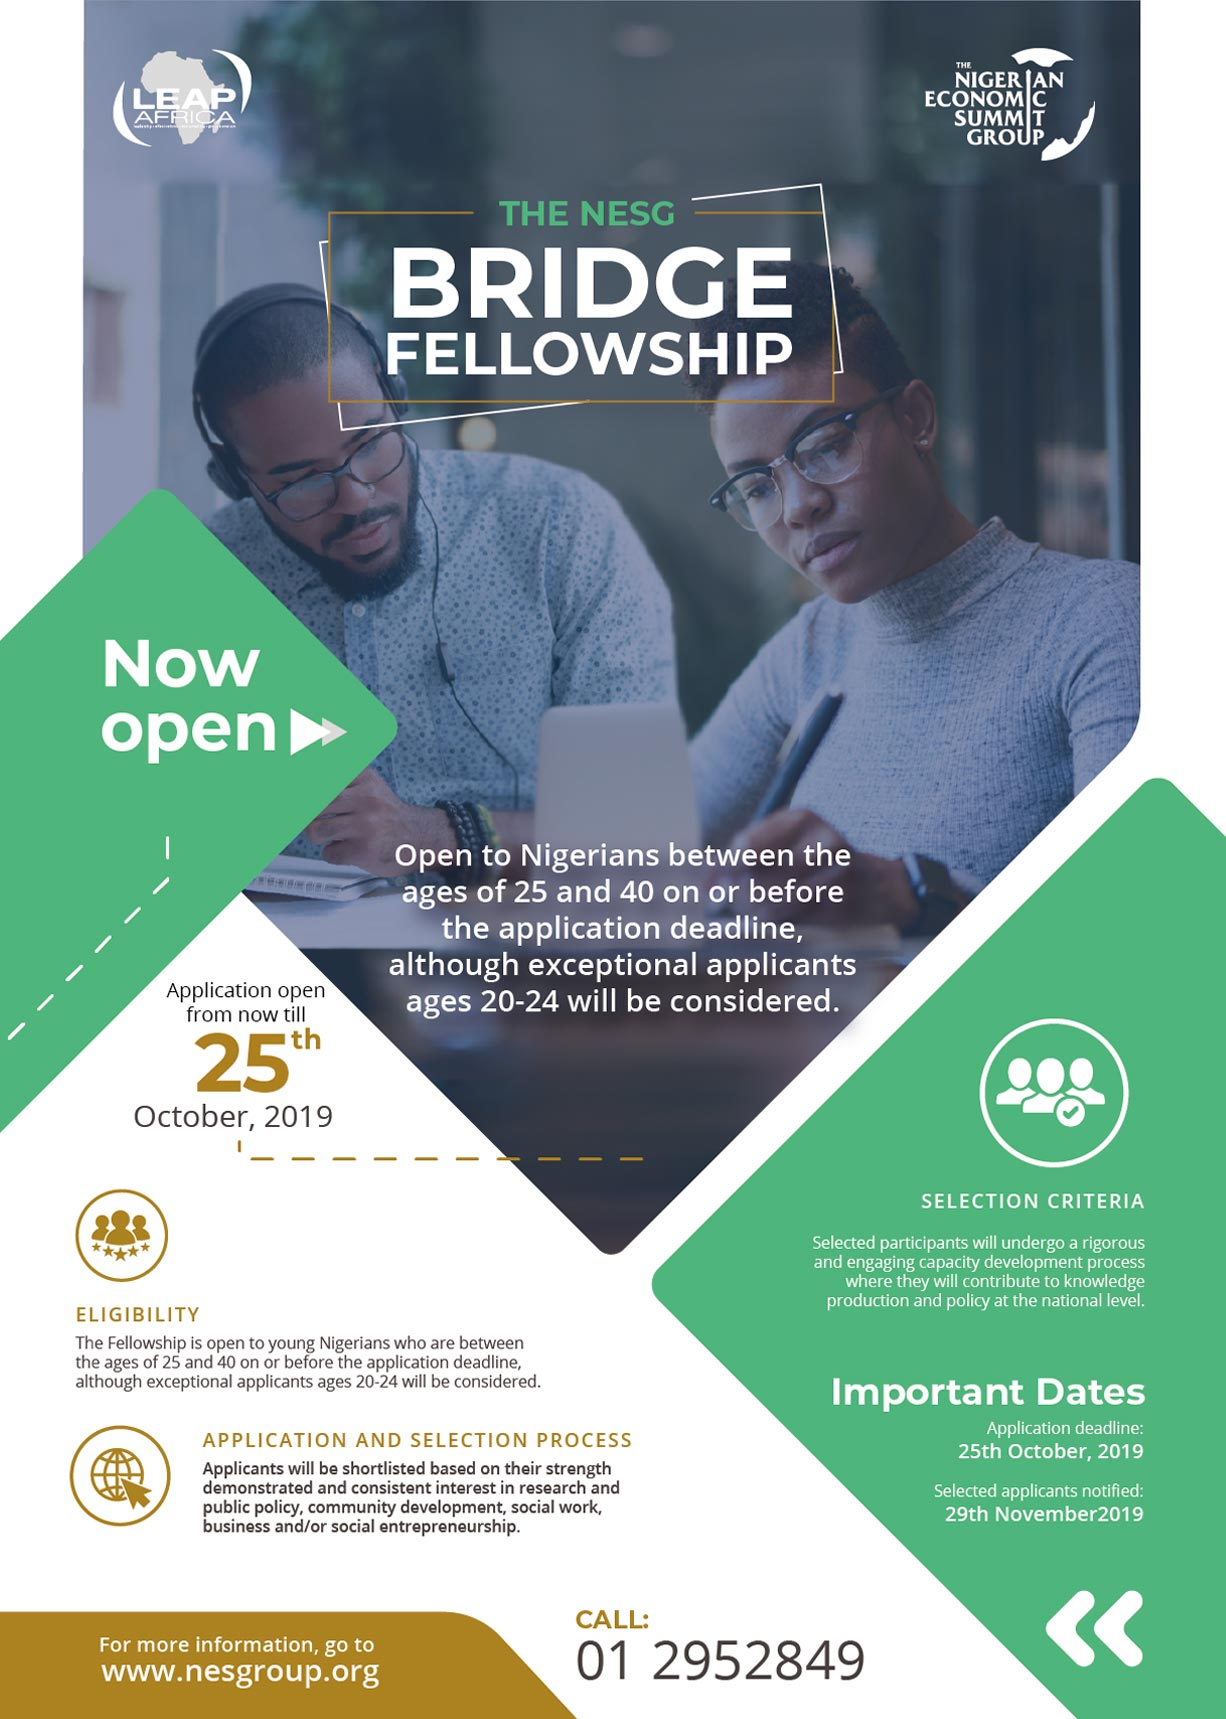 Nigerian Economic Summit Group (NESG) Bridge Fellowship